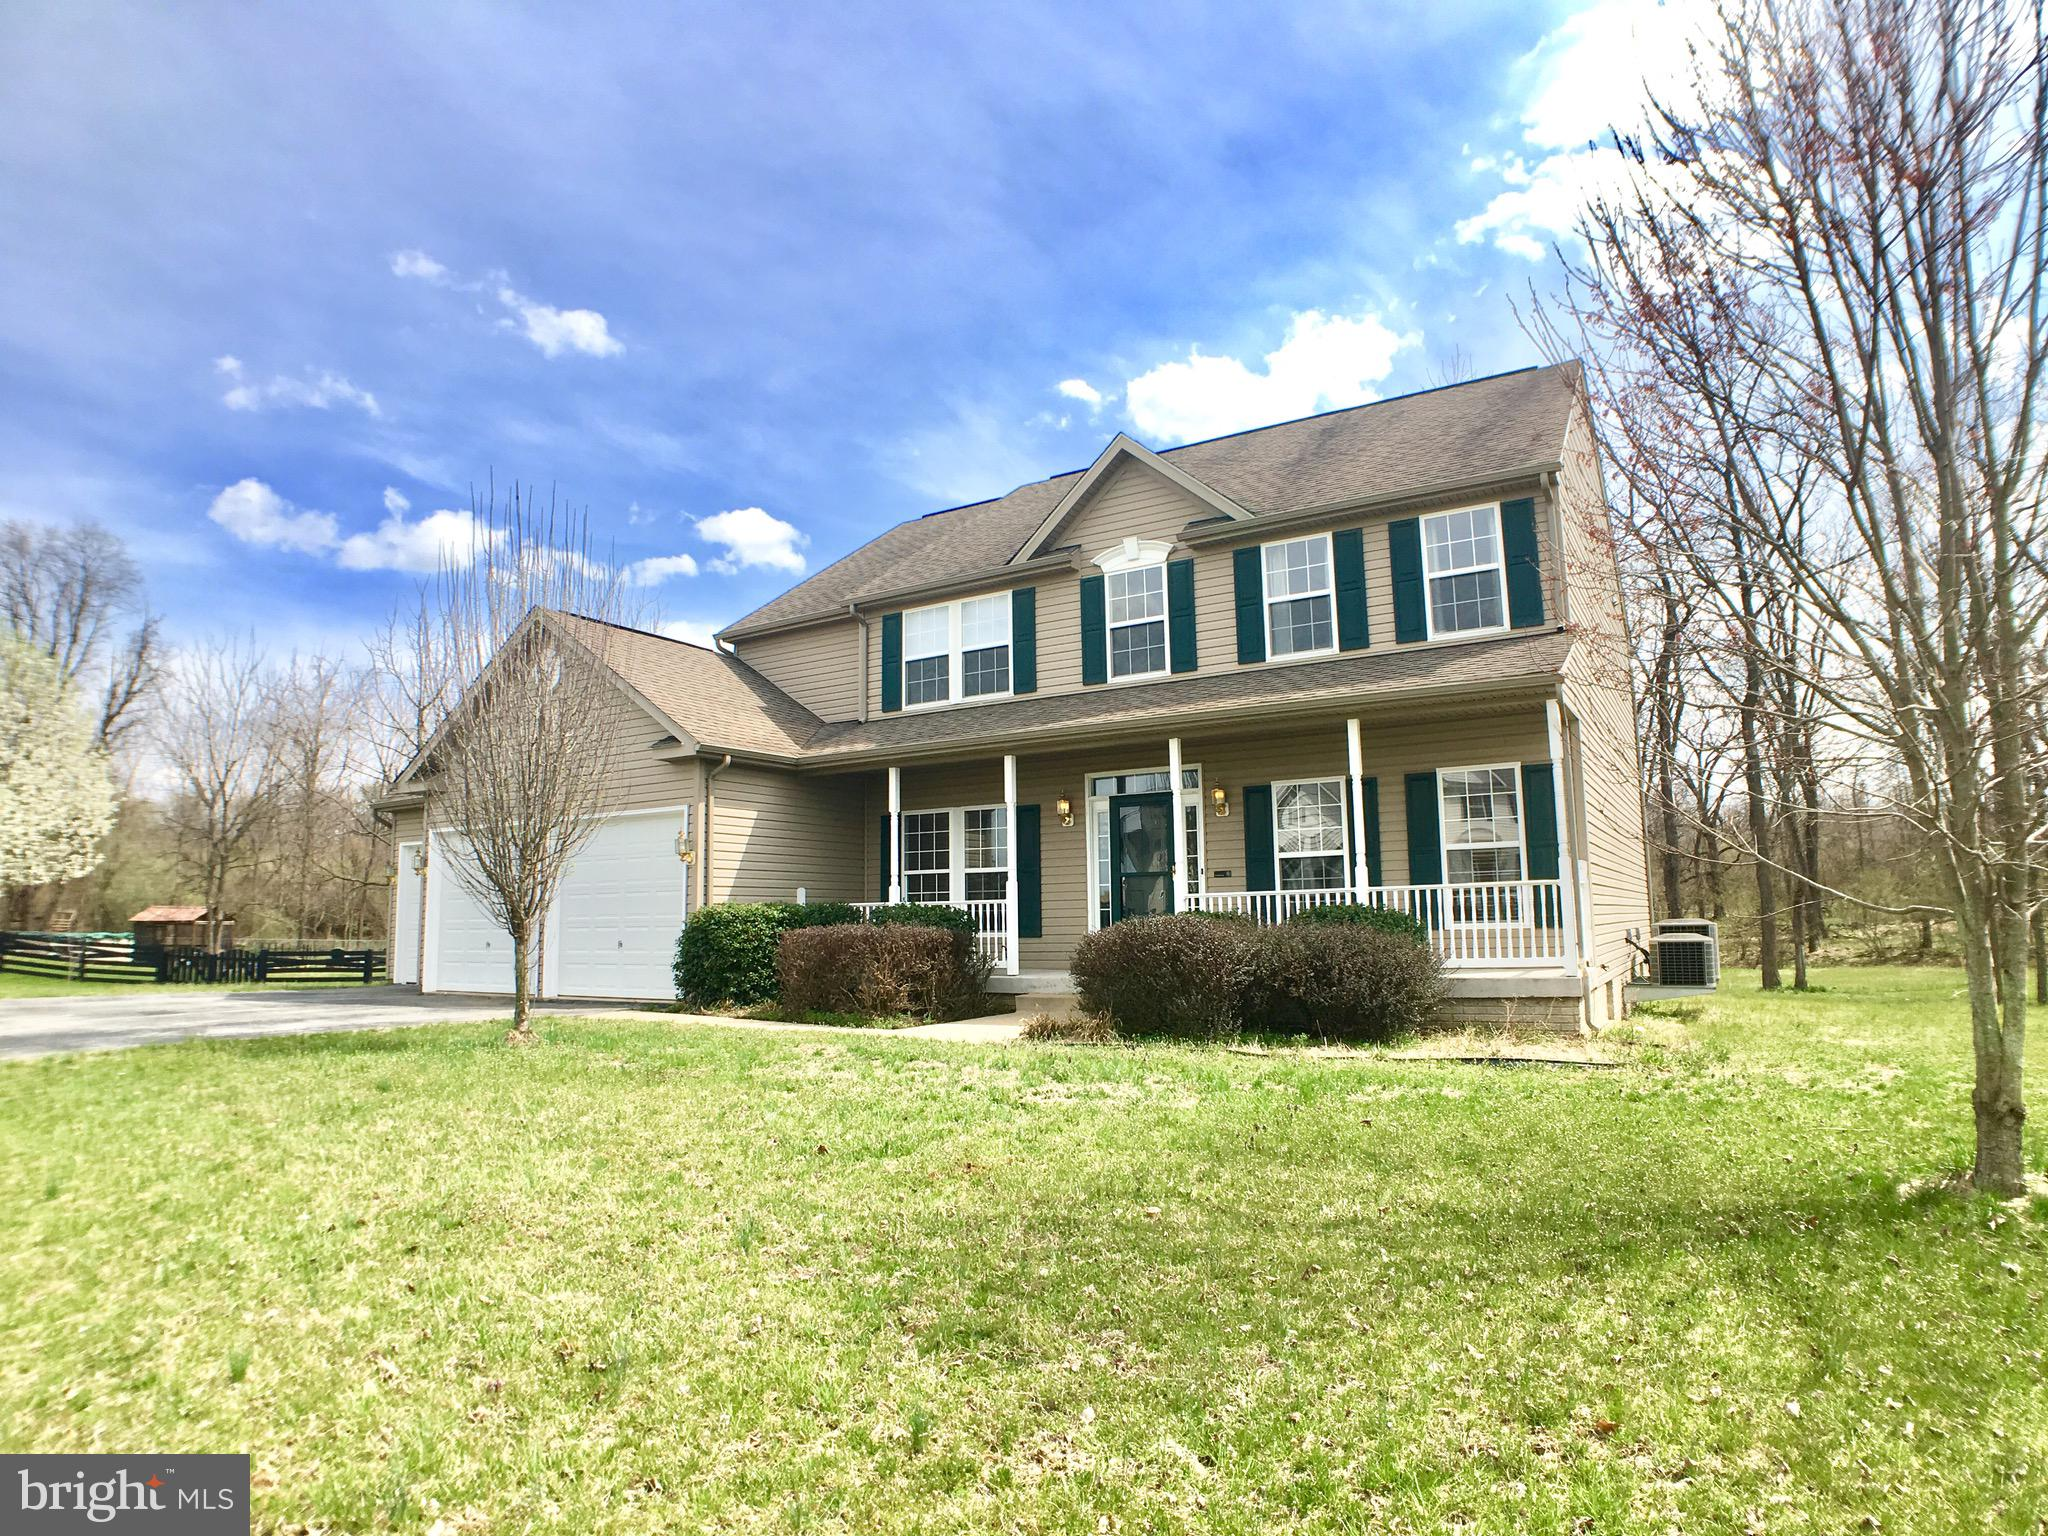 3-Level Colonial in Quail Ridge Subdiv - Turn-Key, Move-In Ready! MAIN LVL: Gleaming REFINISHED Hardwood Flrs & NEW Carpet, Office w/Built-In Bookcases, Formal Liv.&Din. Rms, Laundry Rm, Half Bath, Kitchen w/Center Island, Great Rm, 2-Stry Foyer. UPPER LVL: Mstr Bedrm Suite w/Att.Bathrm & Walk-In Closet,3 Addit.Bedrms & Full Bathrm. 3-Car Garage,Unfin.Walk-Out Bsmnt w/Bathrm Rough-In. Virtual Tour!  > > >  HERE'S A CLOSER LOOK  > > >  Paved Roads of Quail Ridge Subdivision to Paved Driveway -- Front Covered Porch to Main Entrance -- INTERIOR: 2-Story Foyer Main Entrance with Office (with Built-In Bookcases) to Left, Formal Living Room to Right which is Open to Formal Dining Room -- Formal Dining Room with Chair Railing & Access to Kitchen -- Kitchen with Center Island, Table Space Breakfast Area (with Sliding Door, Steps to Backyard), Open to Great Room (with Gas Fireplace & Wall of Gorgeous Windows) -- Main Level Hall to Foyer with Laundry Room (with 3-Car Garage Access Door), Half Bathroom, & Basement Access -- UPPER LEVEL: 2-Story Overlook from Hallway -- Master Bedroom Suite with Attached Full Bathroom (2 Sinks, Corner Jetted Tub, & Separate Shower) & Walk-In Closet -- Bedrooms #2-4 & Full Bathroom #2 (2 Sinks) Accessed from Hallway -- LOWER LEVEL: Unfinished Basement with Rough-In Bathroom, Walk-Out Steps, & Windows -- EXTERIOR: 0.81 Acre with Rear Yard Backing to Trees & Storage Shed.   > > >  WHAT'S NEARBY  > > >  1.7 Miles to Route WV 9, Lee than 0.5 Mile to Cascading Creek Park & Cascading Waterfall Brook Park, 6.4 Miles to Route 11, 7 Miles to I-81, 7 Miles to Martinsburg, 11.8 Miles to Center of Charles Town & Ranson, 17.1 Miles to Harpers Ferry, 7.9 Miles to Shepherdstown, & 25 Miles to Winchester, VA.